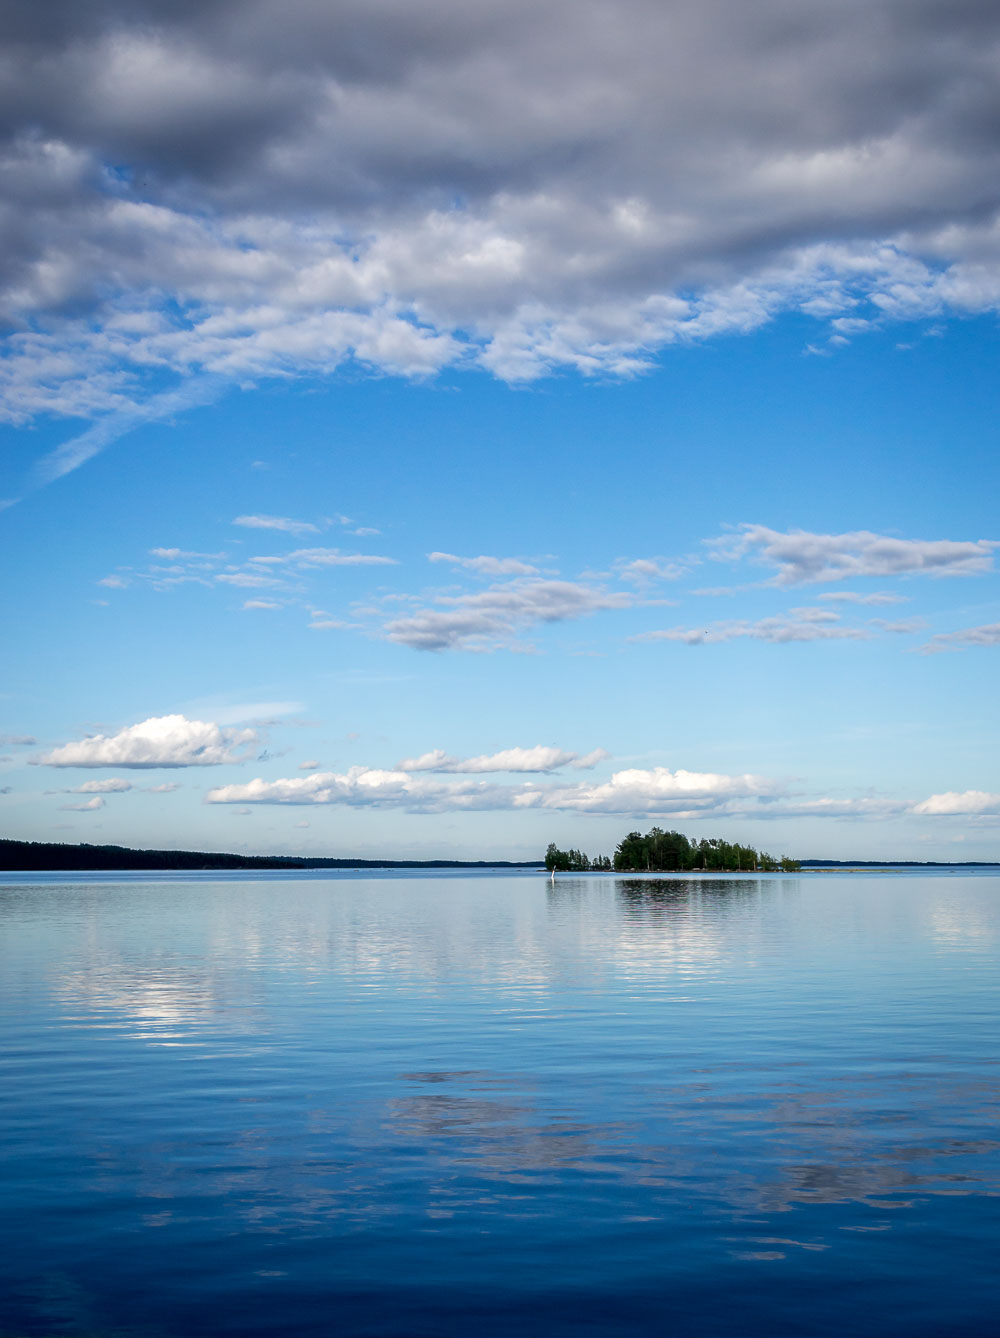 Quintessential Finland, from lake Saimaa (June 2014).